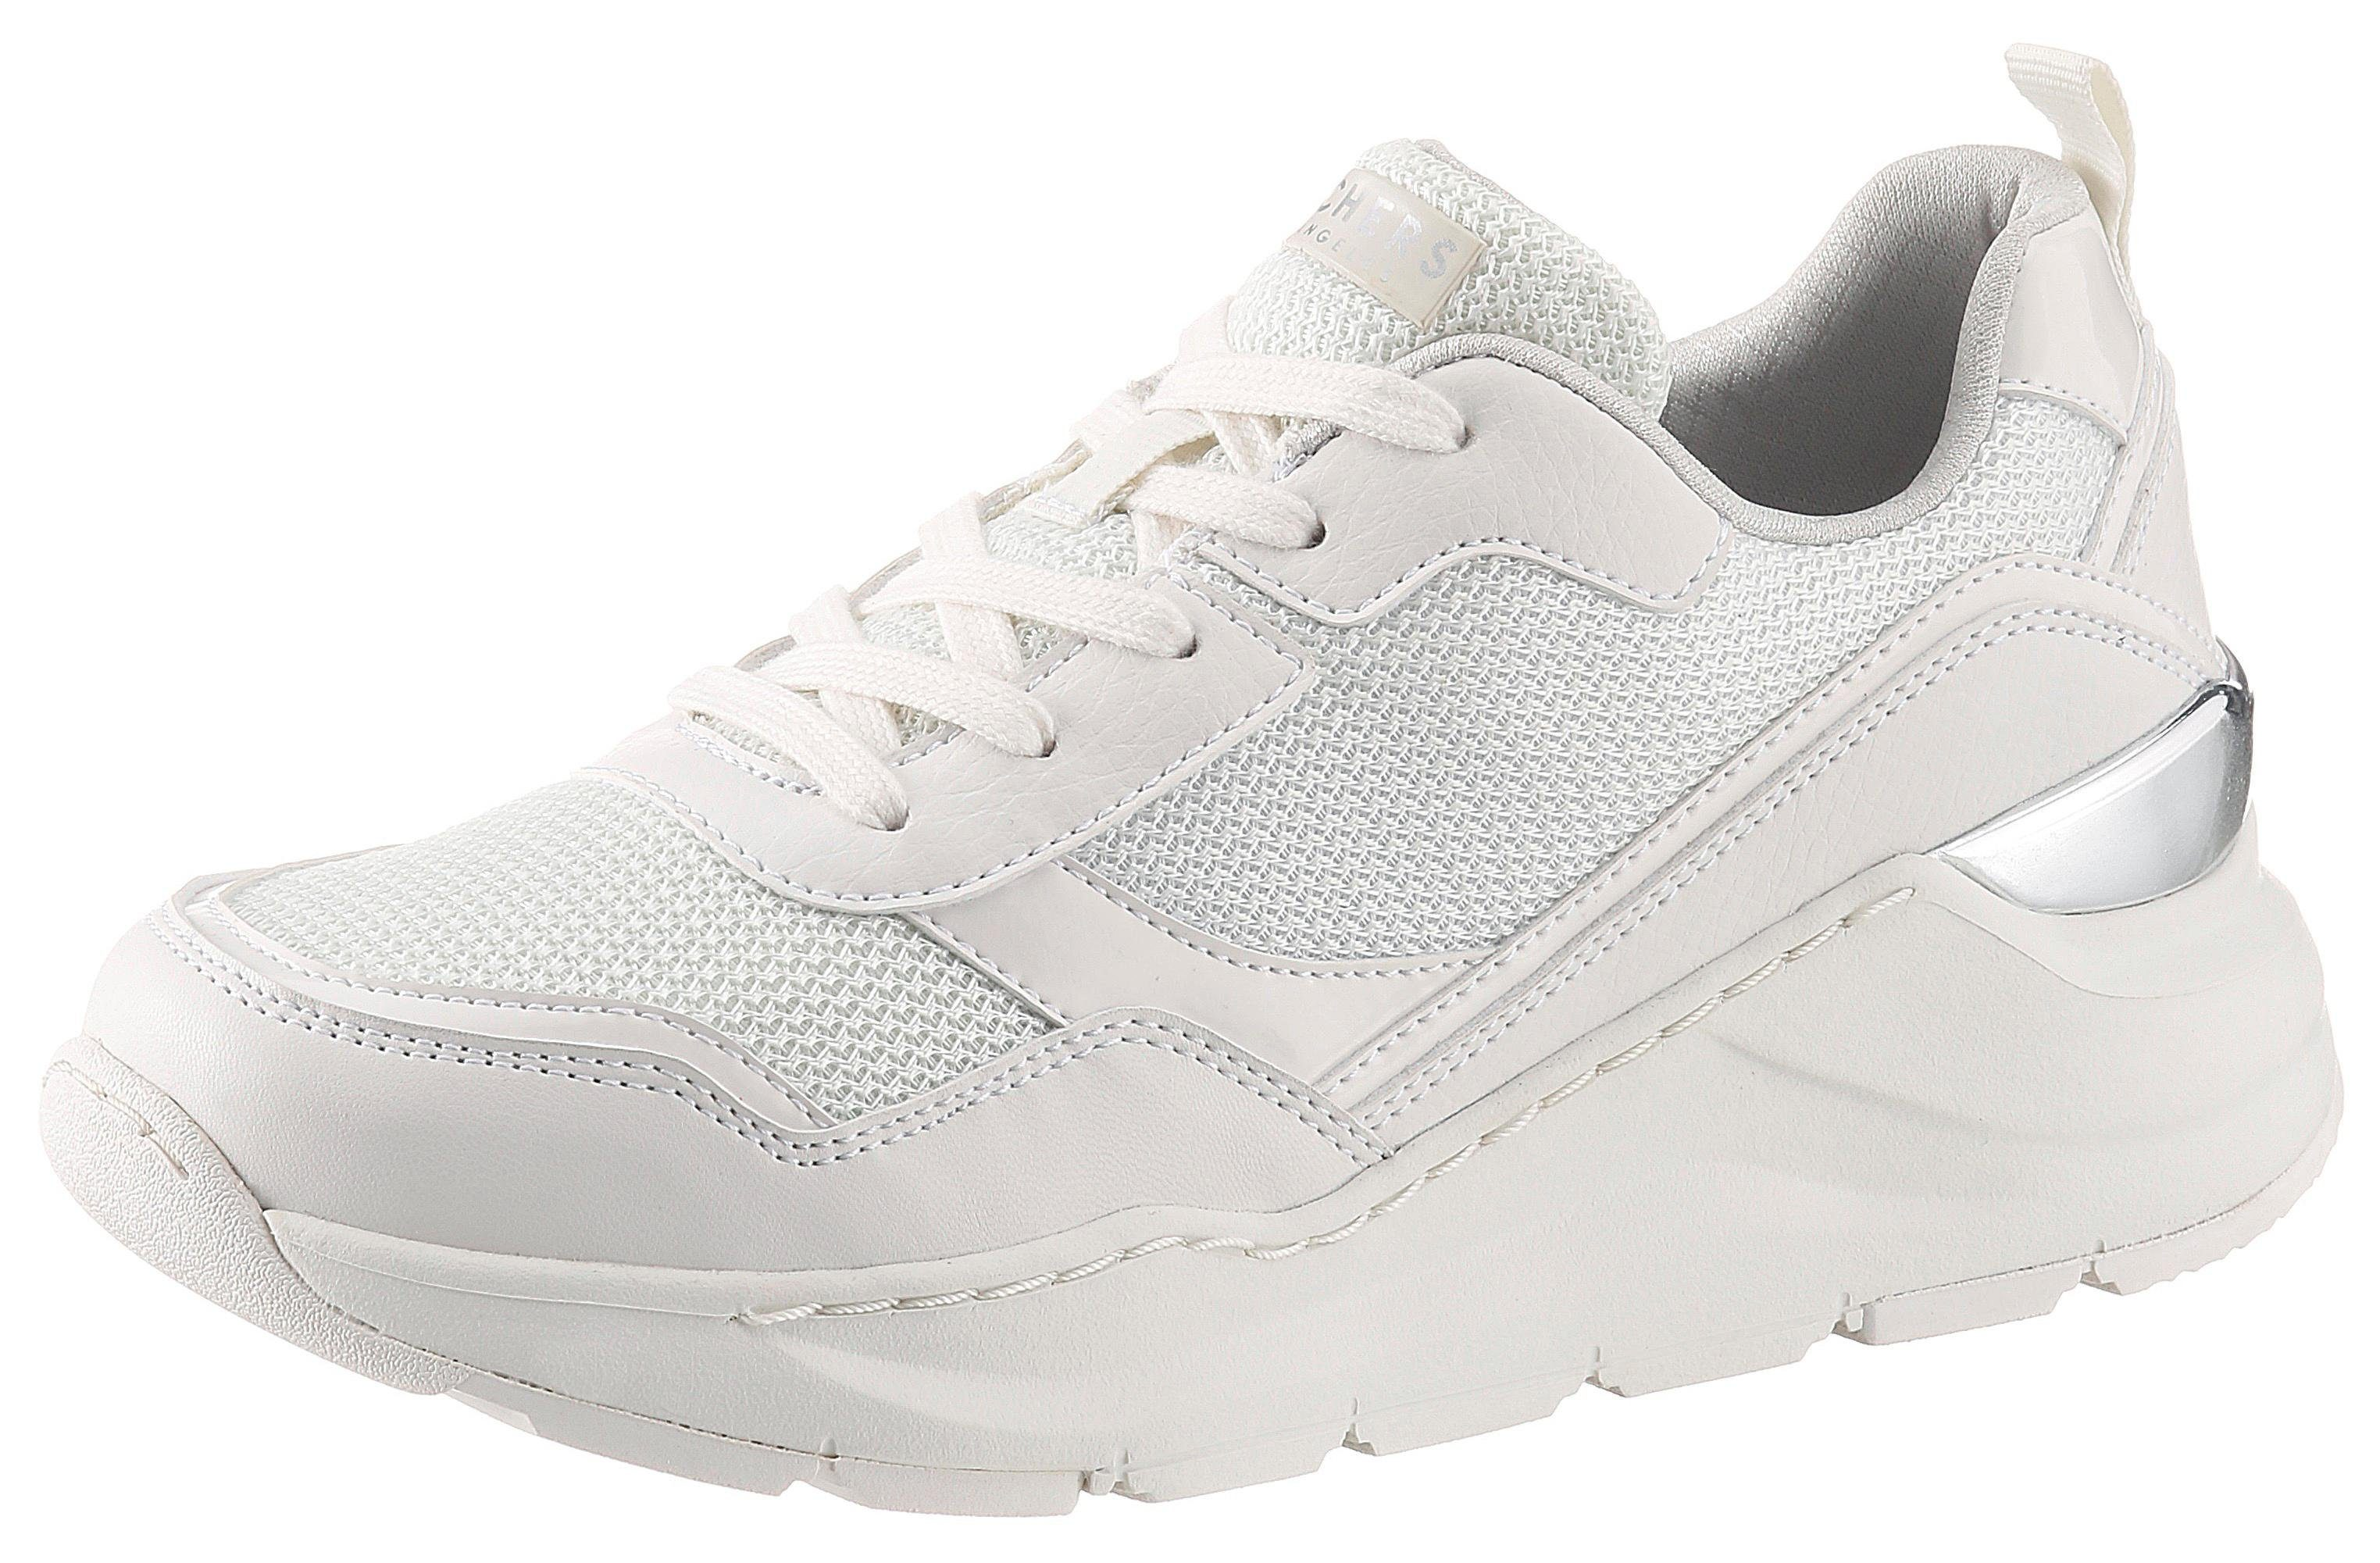 Skechers »Rovina Clean Sheen« Wedgesneaker mit Air Cooled Memory Foam online kaufen | OTTO